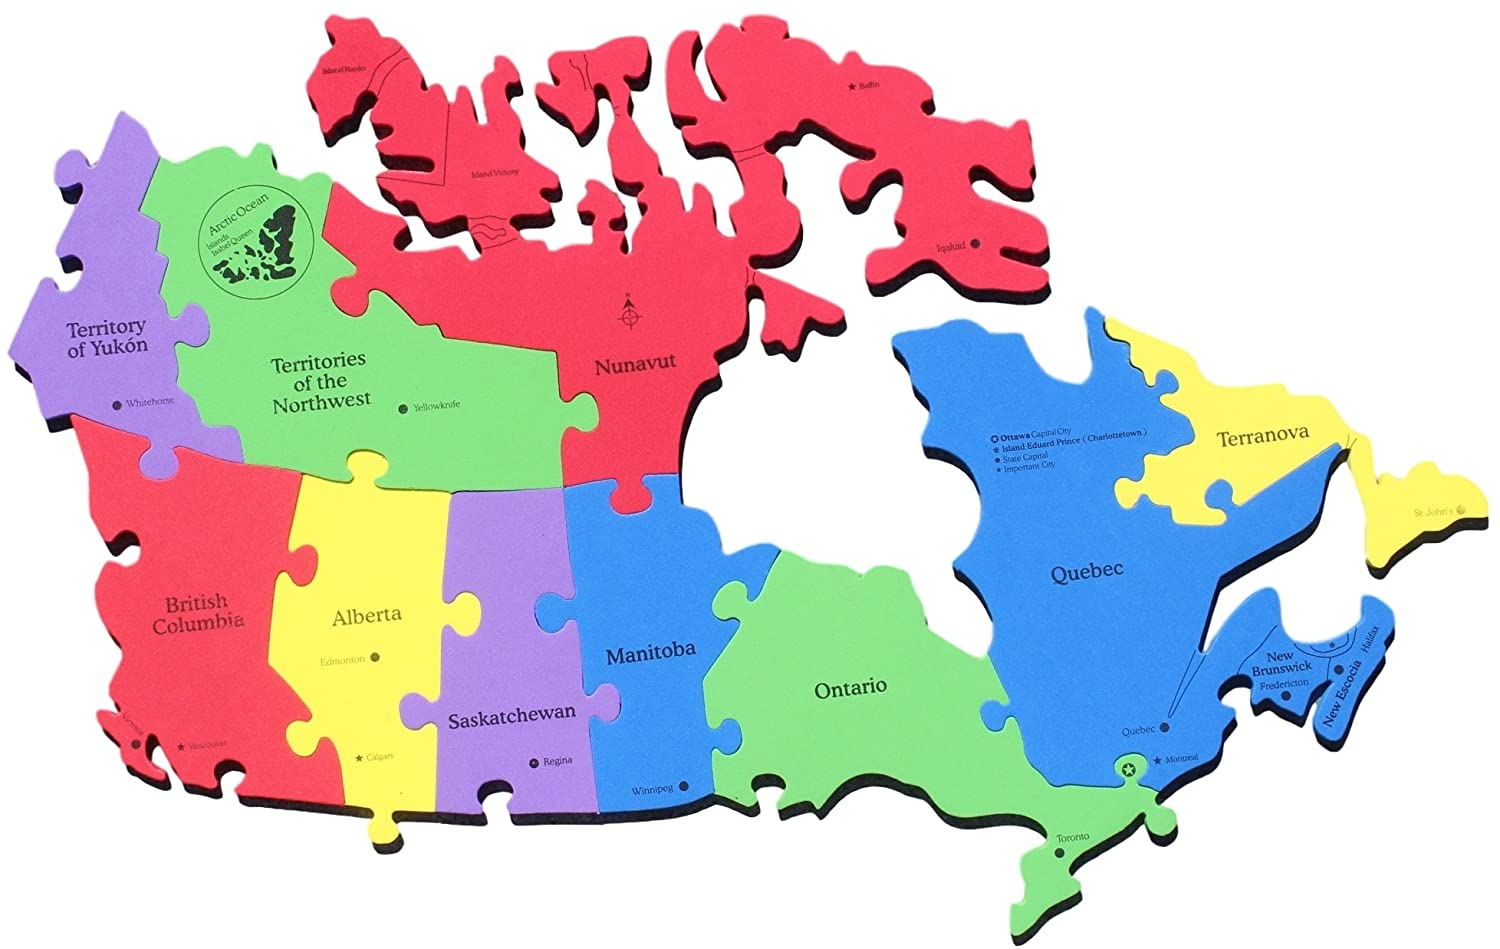 French Map Of Canada With Provinces And Capitals.Canada Map Puzzle Canada Provinces And Territories Capital Cities